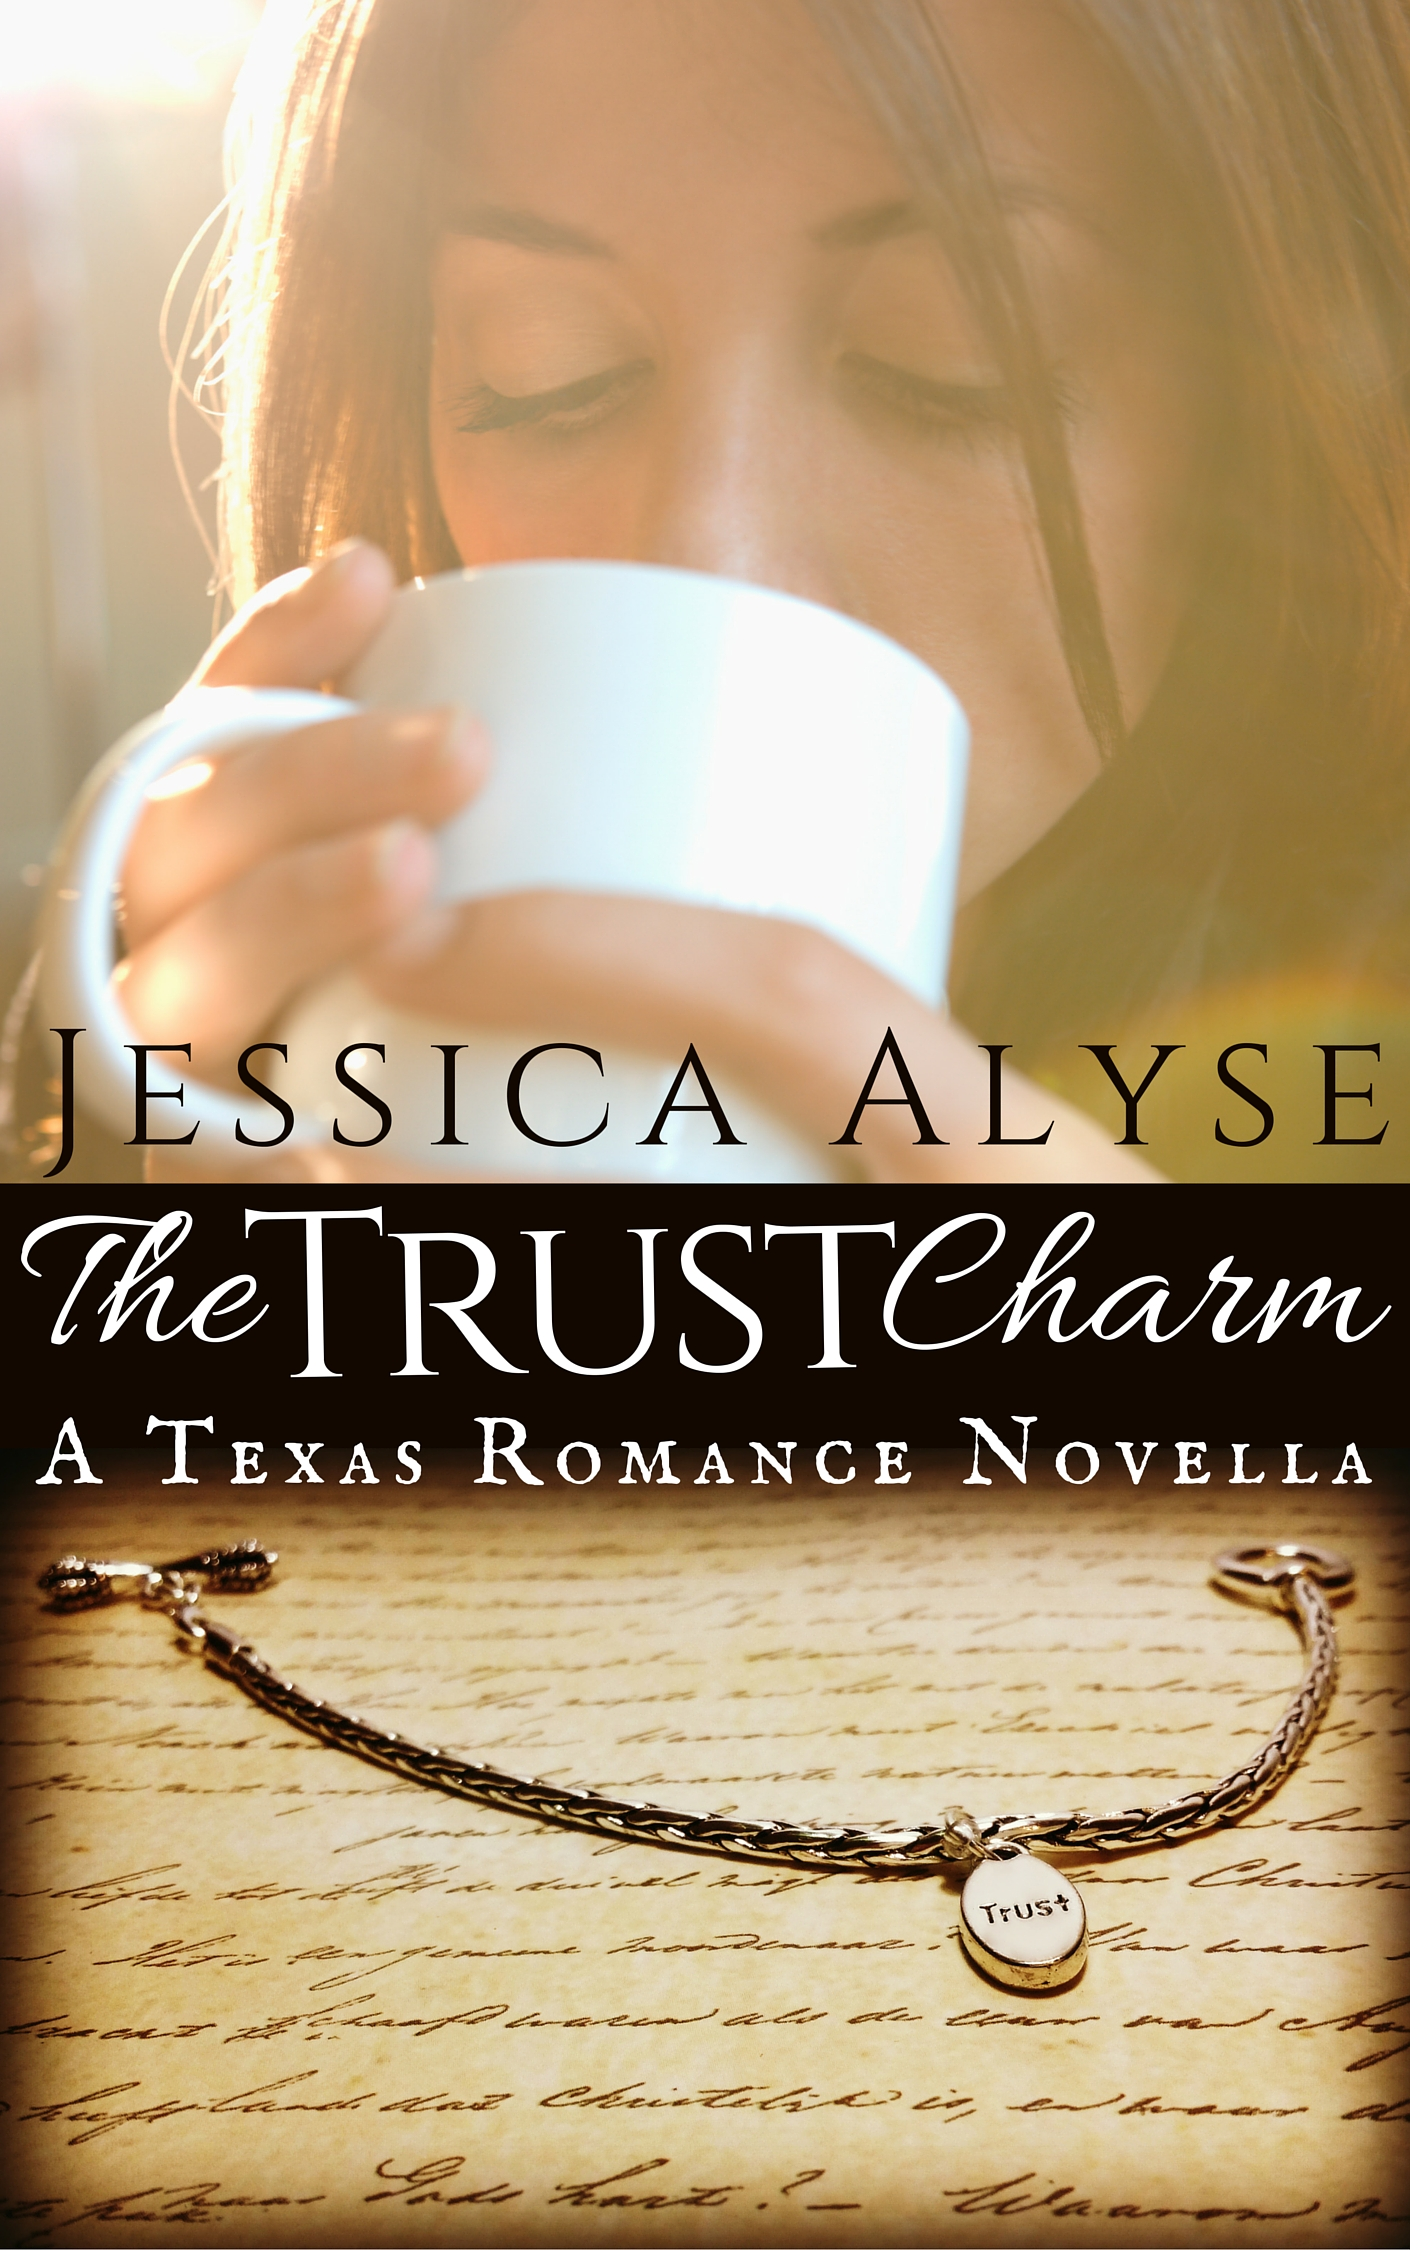 The Trust Charm (2)